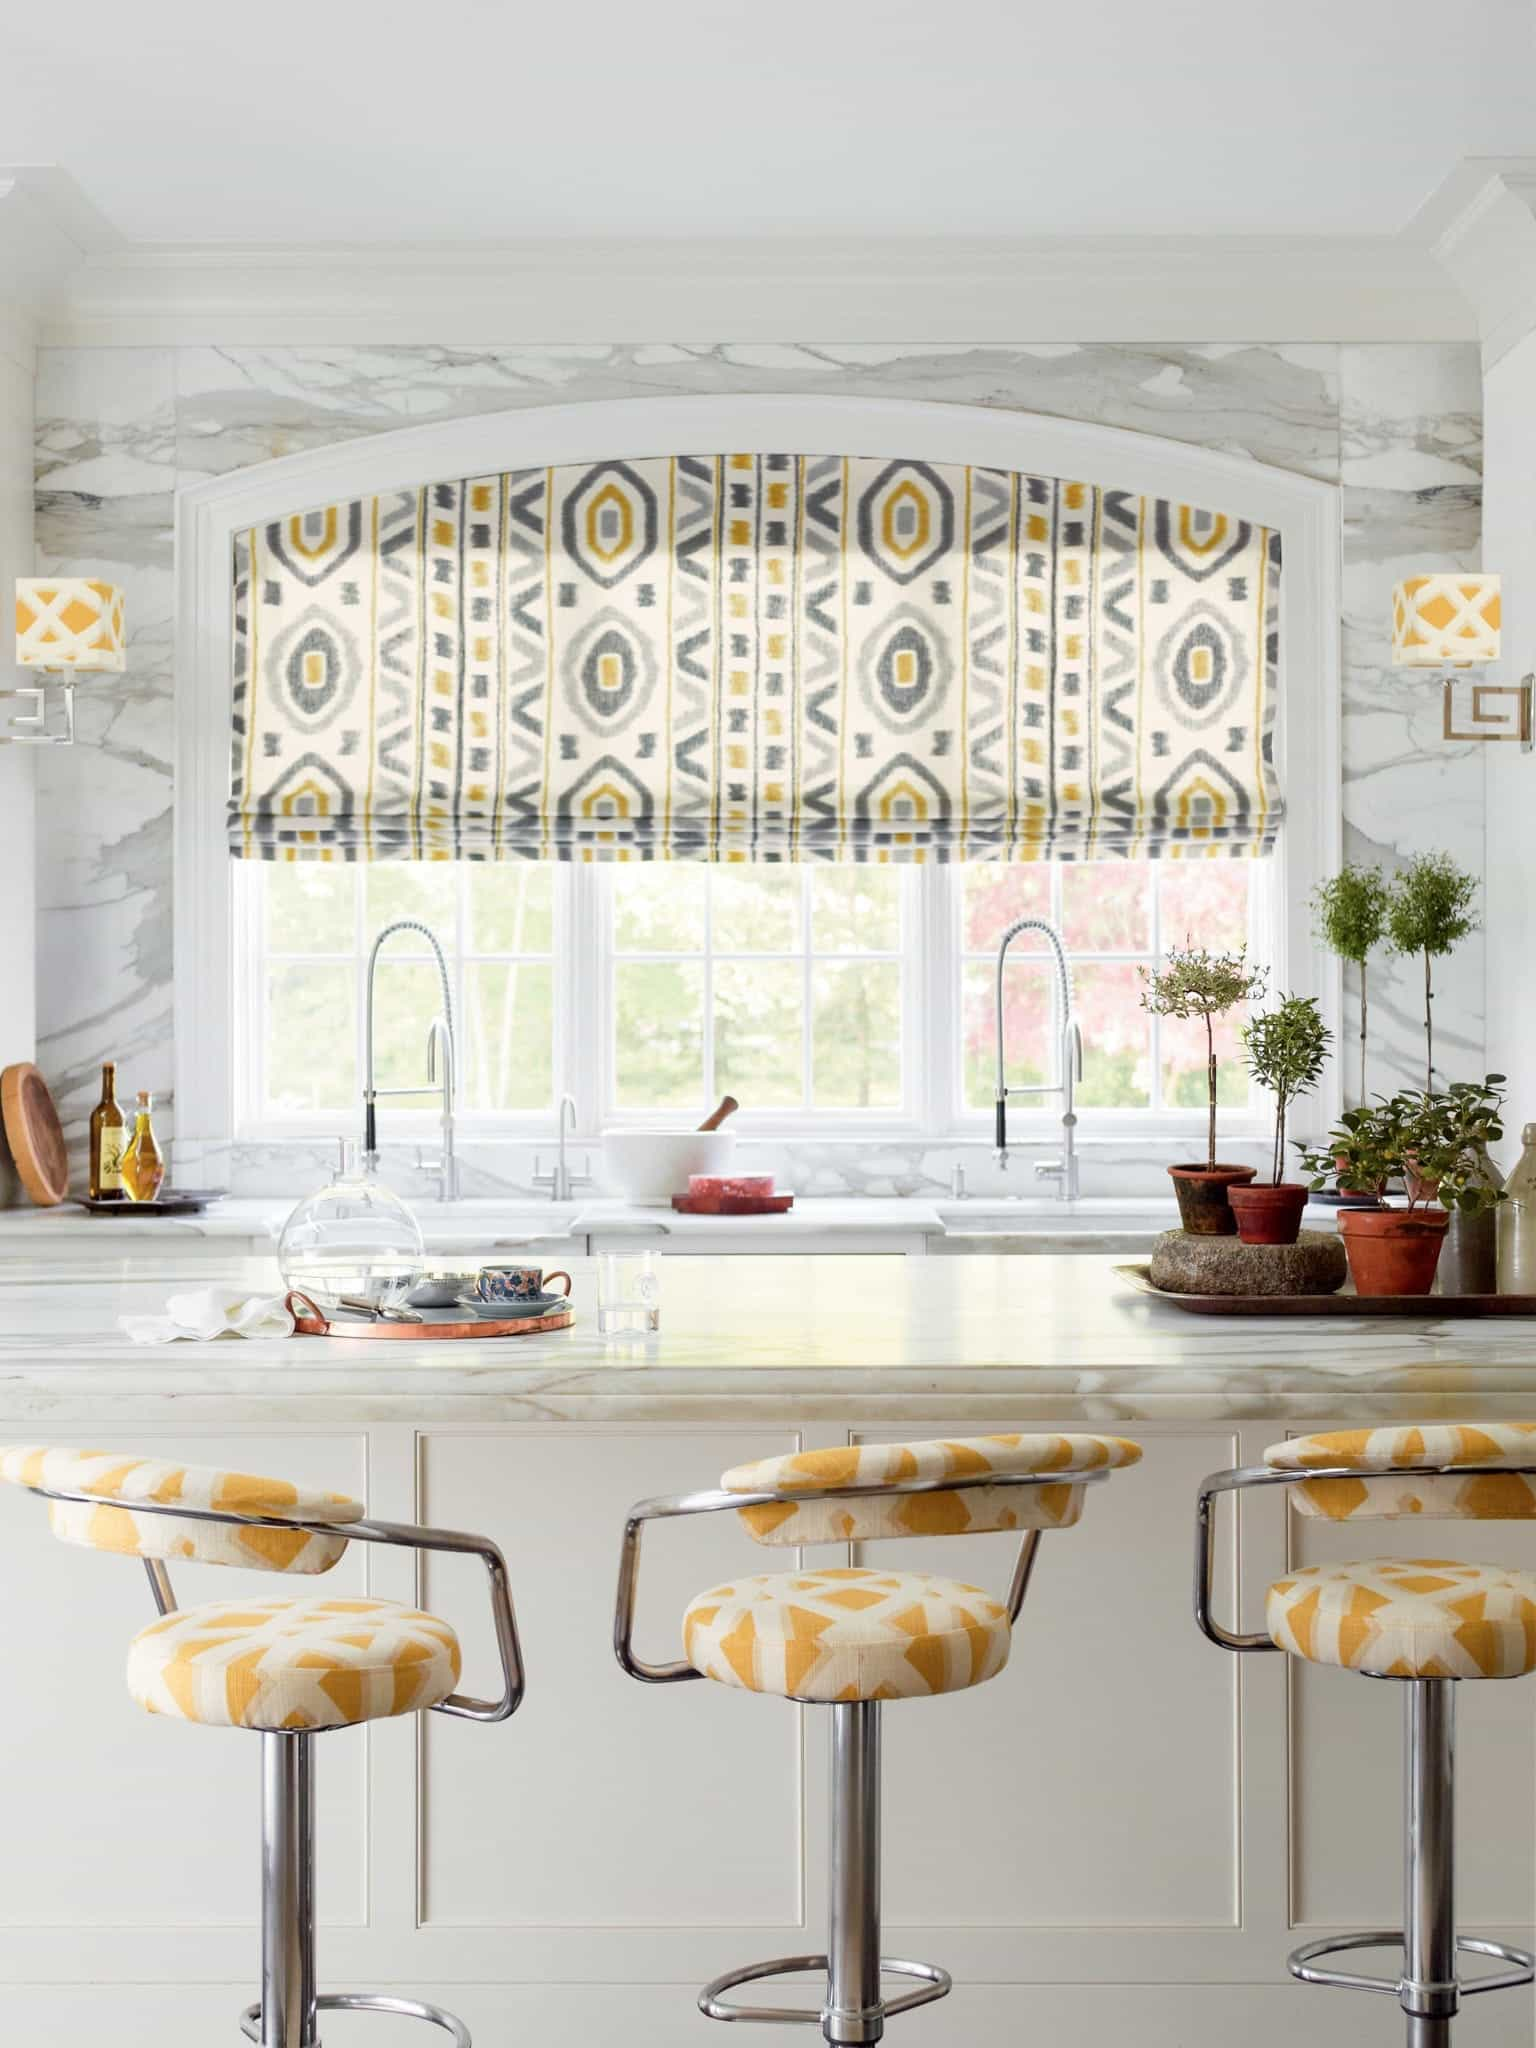 Fabric Based Patterned Curtain For White Country Kitchen Interior (Image 3 of 11)